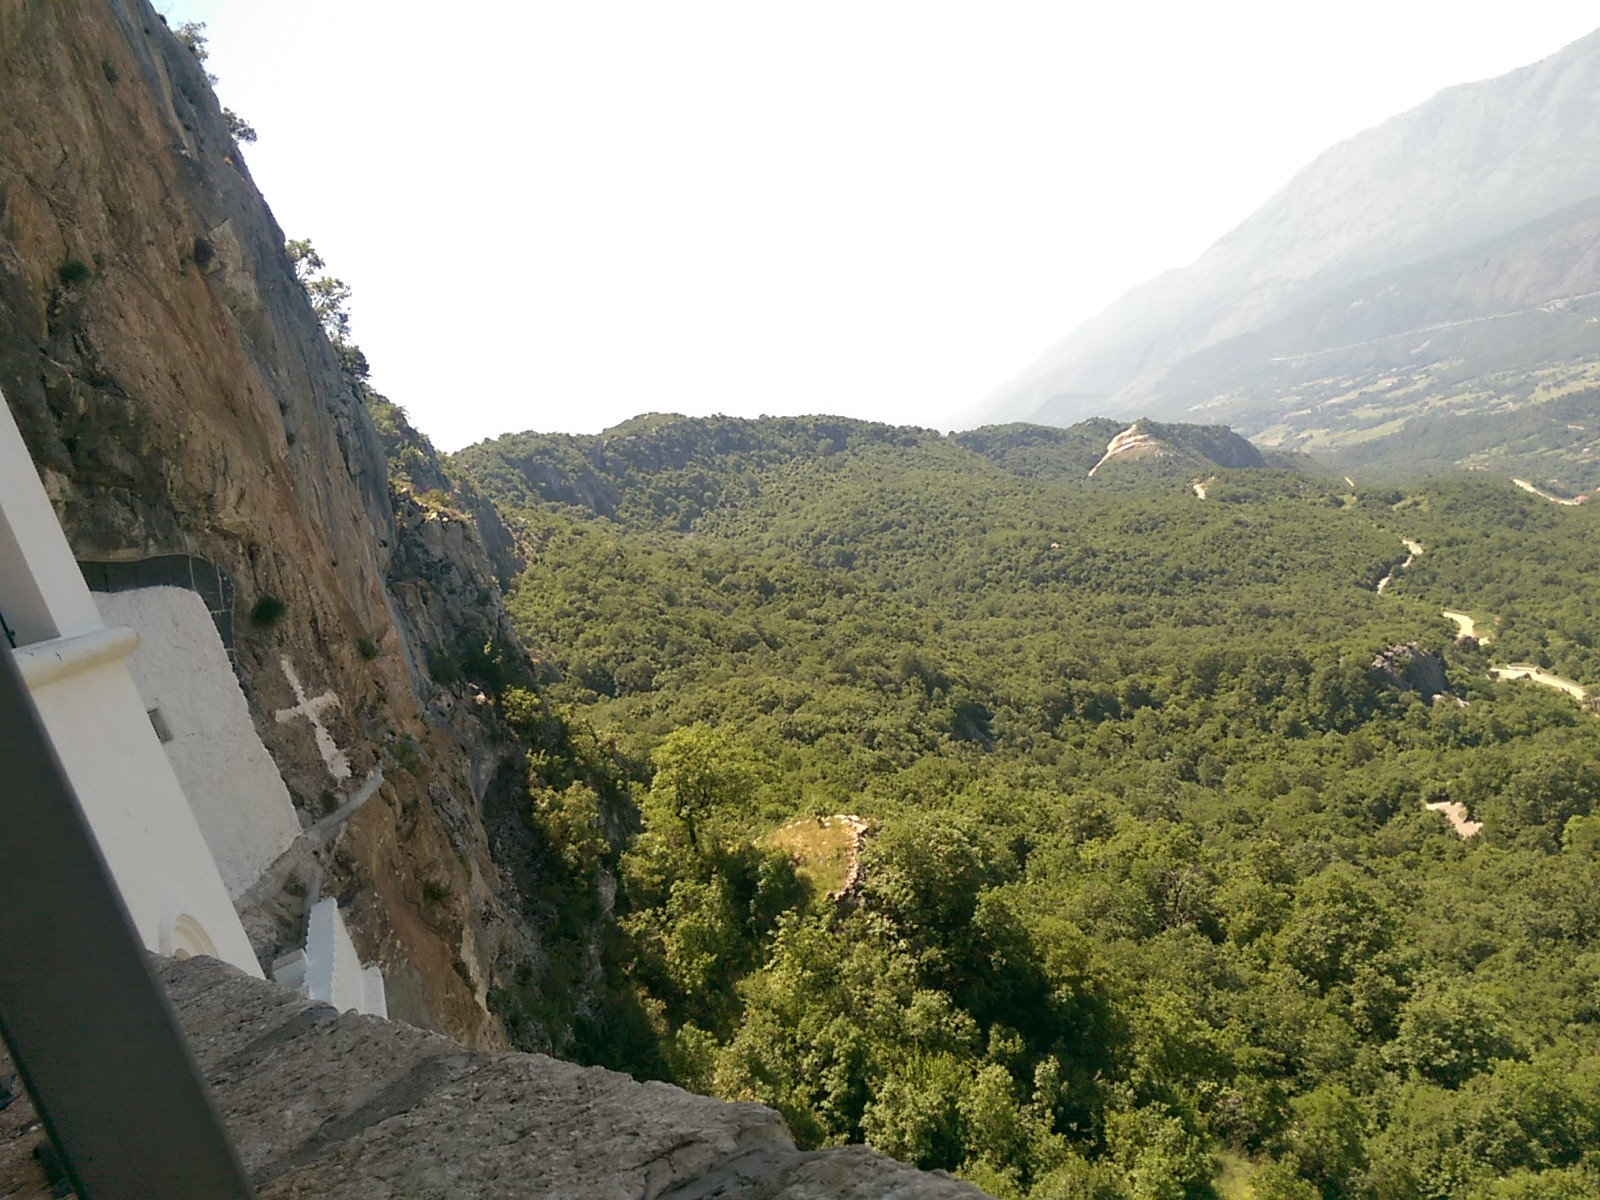 Vertical cliff to the left and a view across a tree filled valley